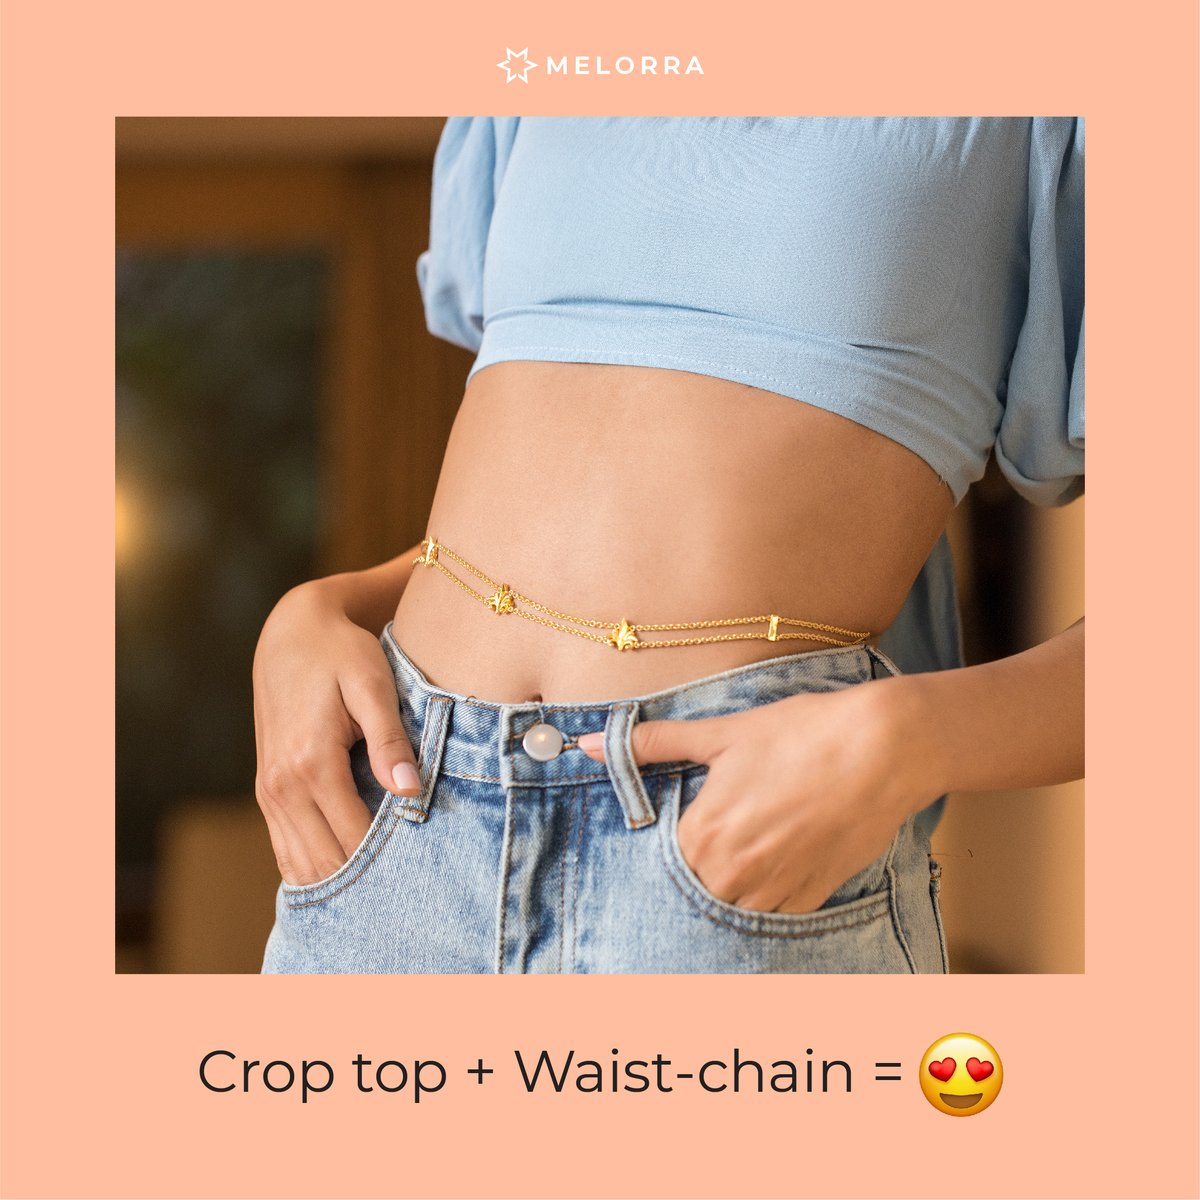 #𝐒𝐭𝐲𝐥𝐞𝐓𝐢𝐩: Slip into a pair of jeans, team it up with a cute crop top and flaunt your mid-riff with a waist chain. We're not kidding, waist chains are a super rage this season and is a must. Shop Novel Clique Wasit Chain >   #Melorra #FineJewellery